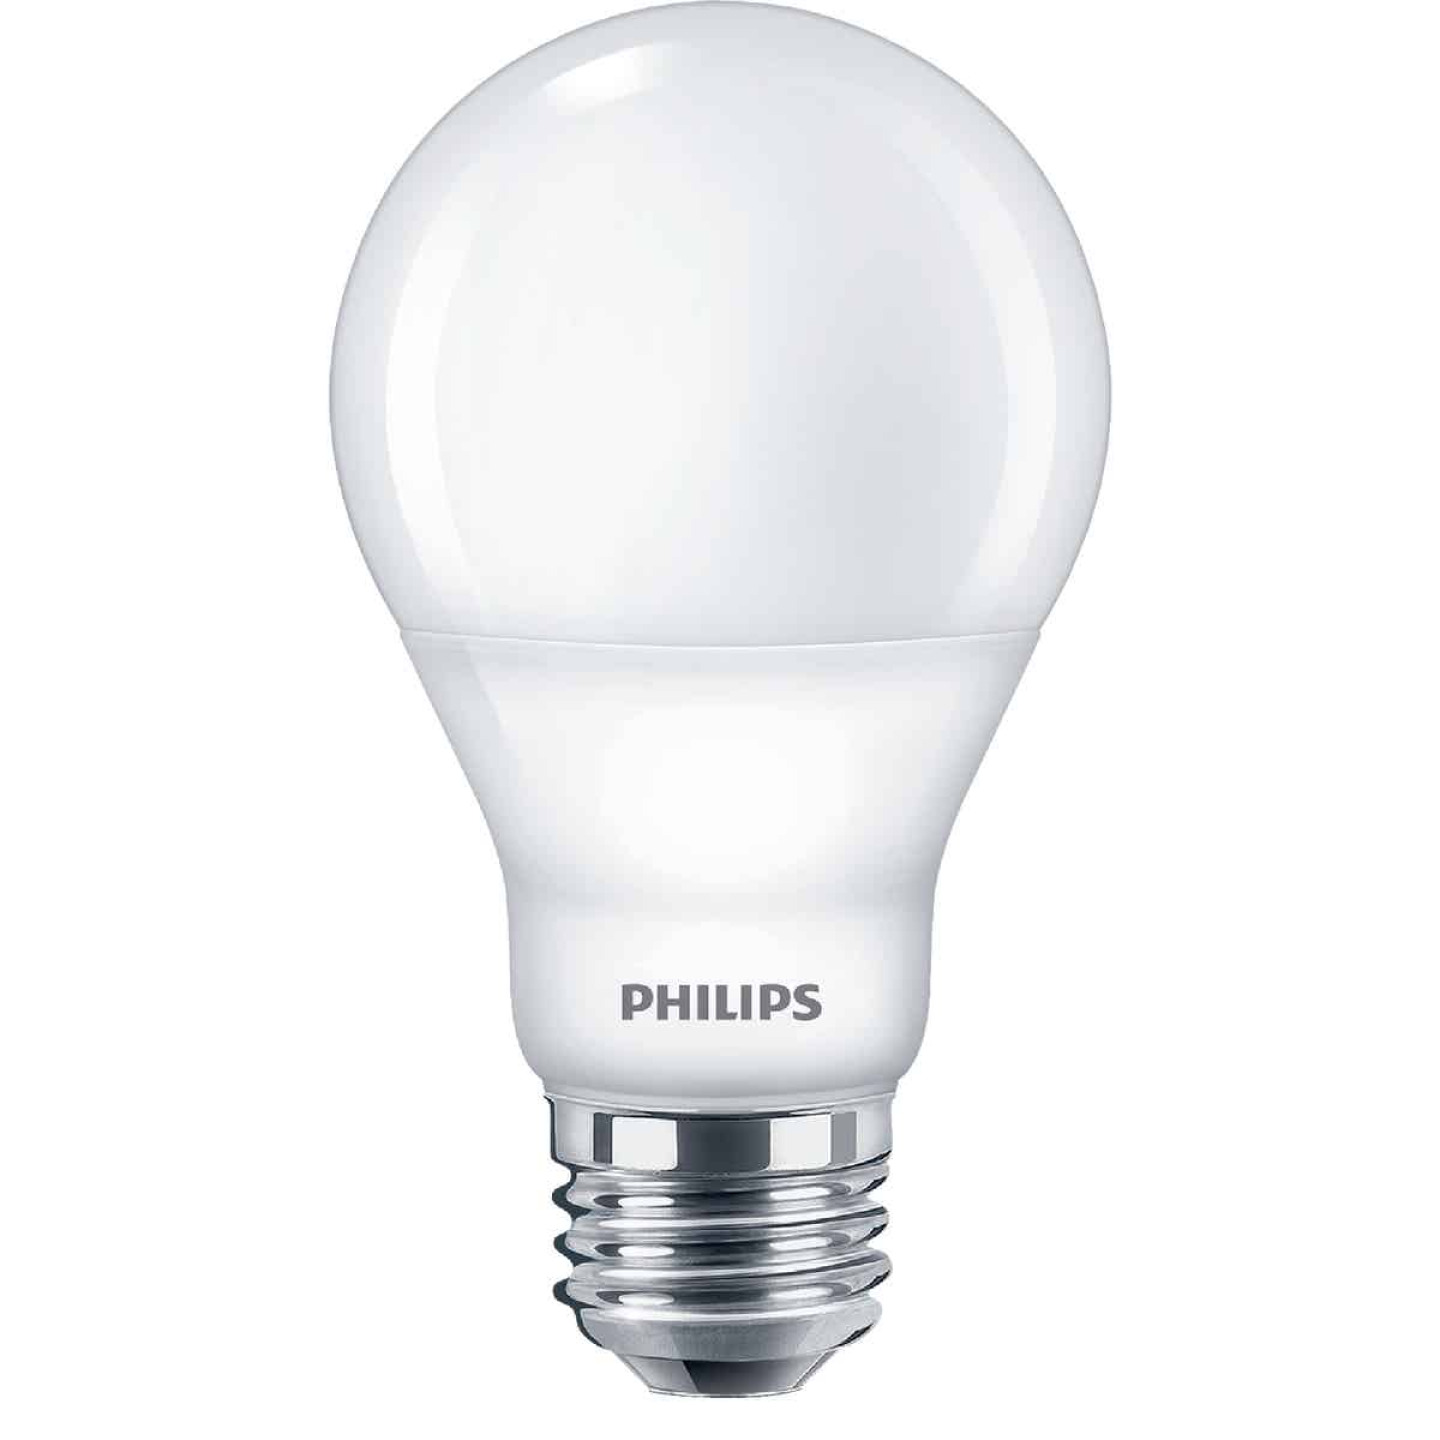 Philips Warm Glow 40W Equivalent Soft White A19 Medium Dimmable LED Light Bulb (4-Pack) Image 3